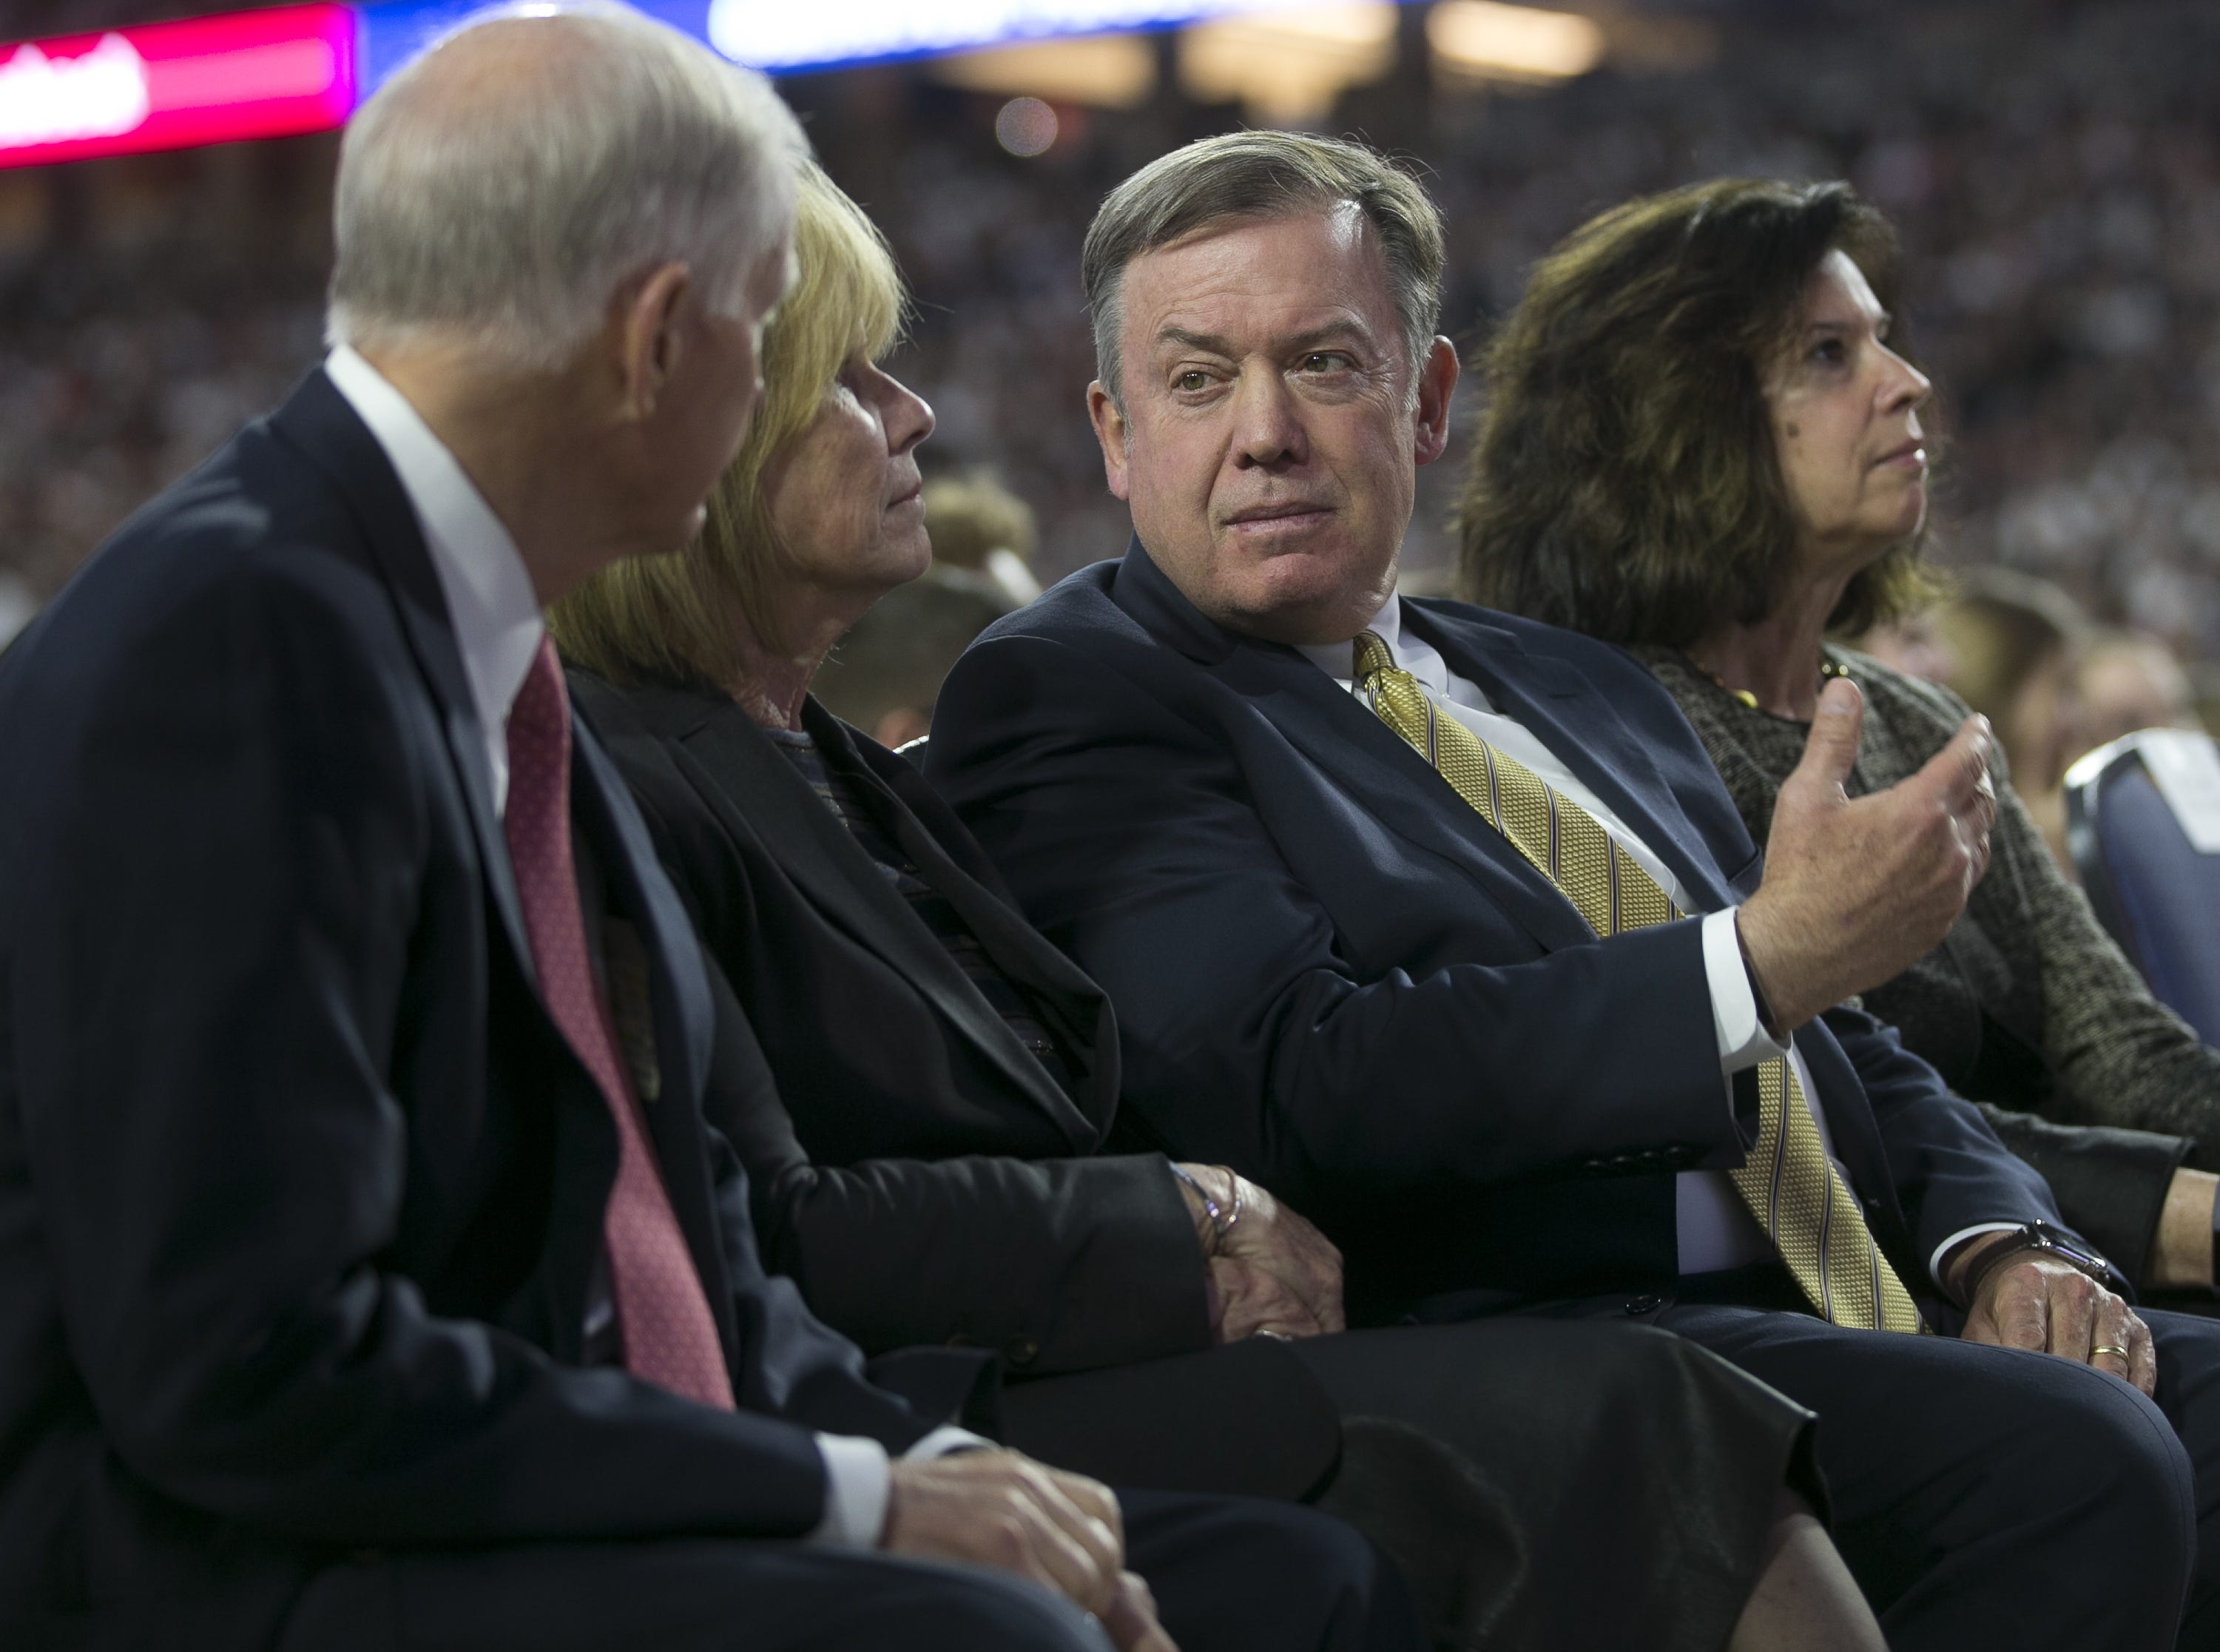 Arizona State University president Michael Crow (center-right) and his wife Sybil Francis (far-right) wait with members of the the Church of Jesus Christ of Latter-day Saints to hear President Russell Nelson speak at a devotional at State Farm Stadium in Glendale, Arizona on Feb. 10, 2019.